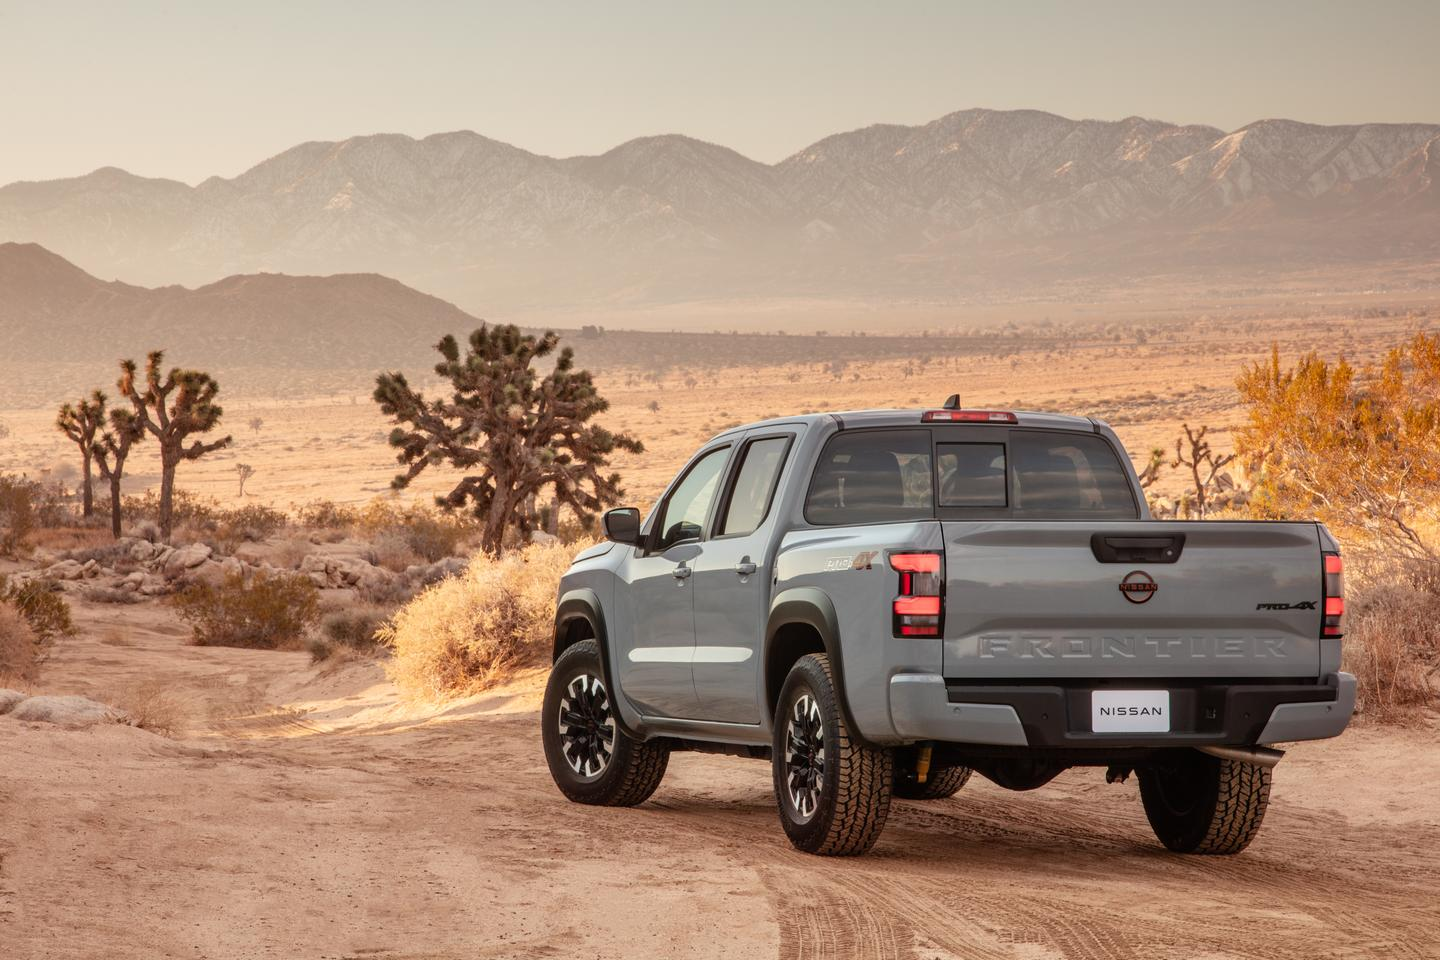 For the first time in the Frontier's history, it now includes a damped tailgate